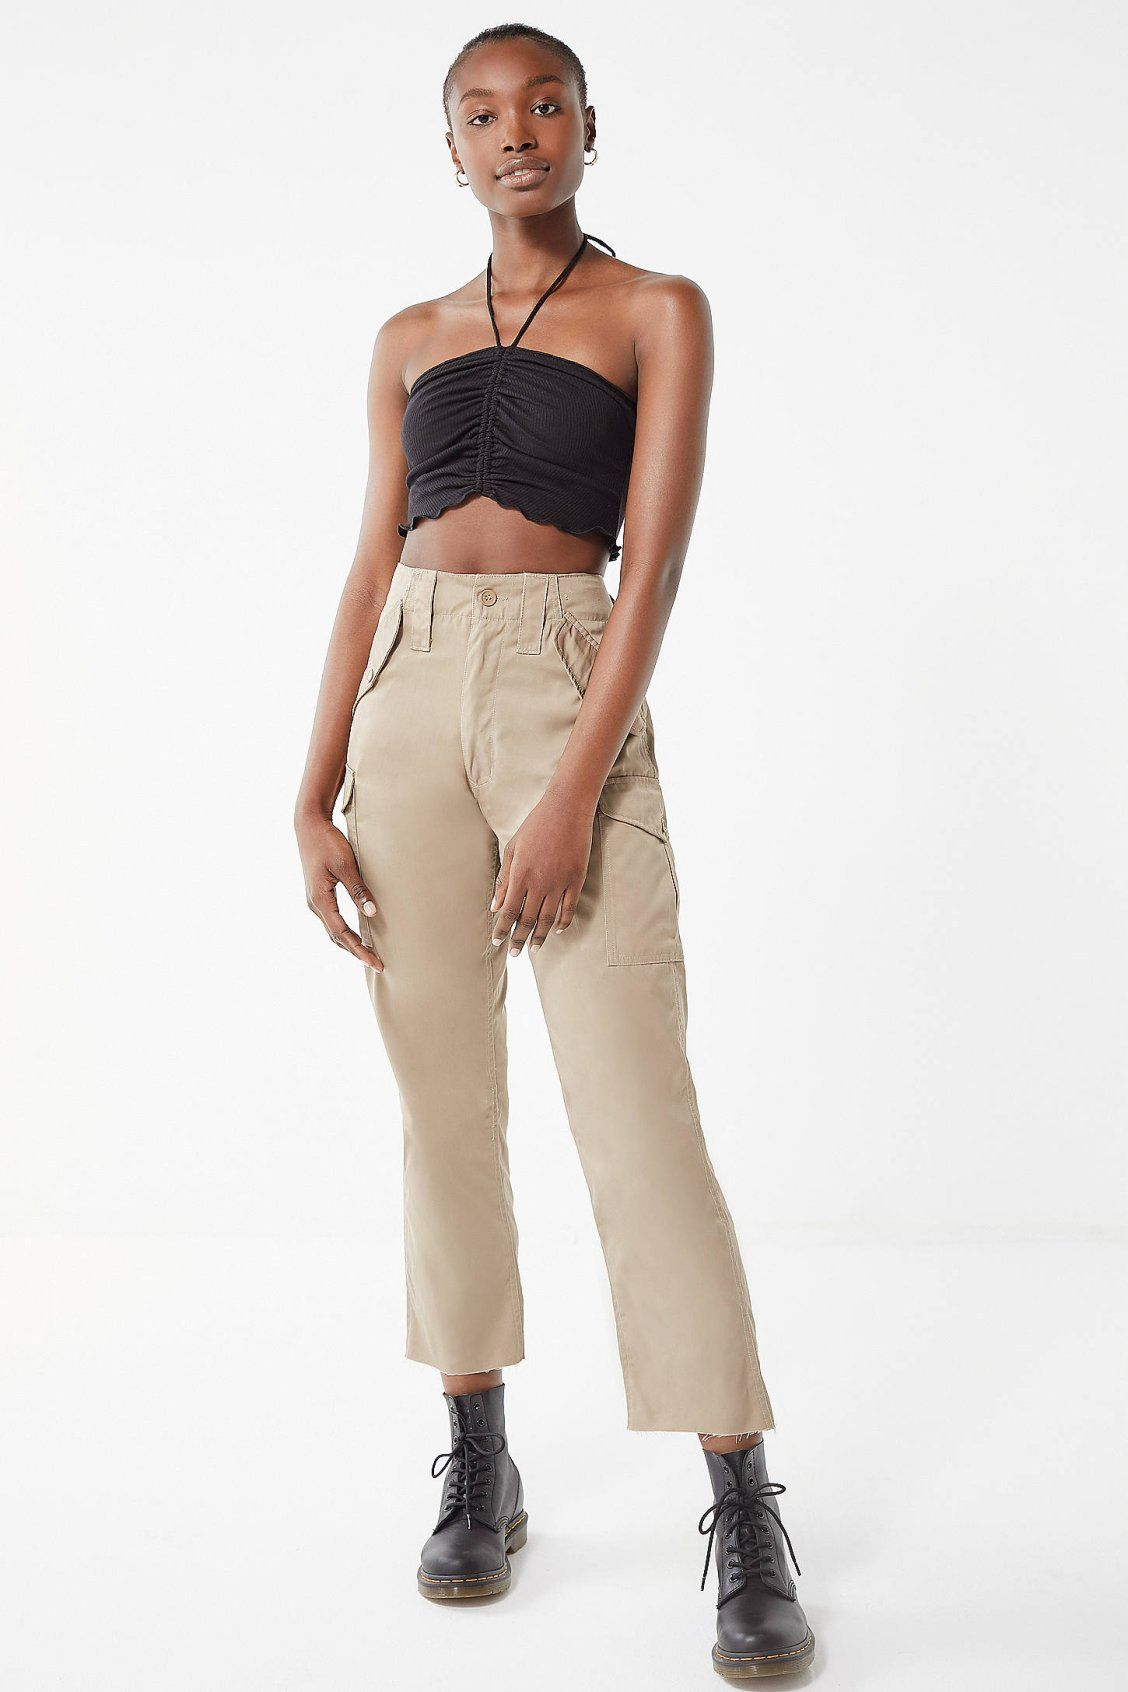 Arte Bella Surplus Urban Renewal Remade Surplus Cropped Cargo Pant Urban Outfitters